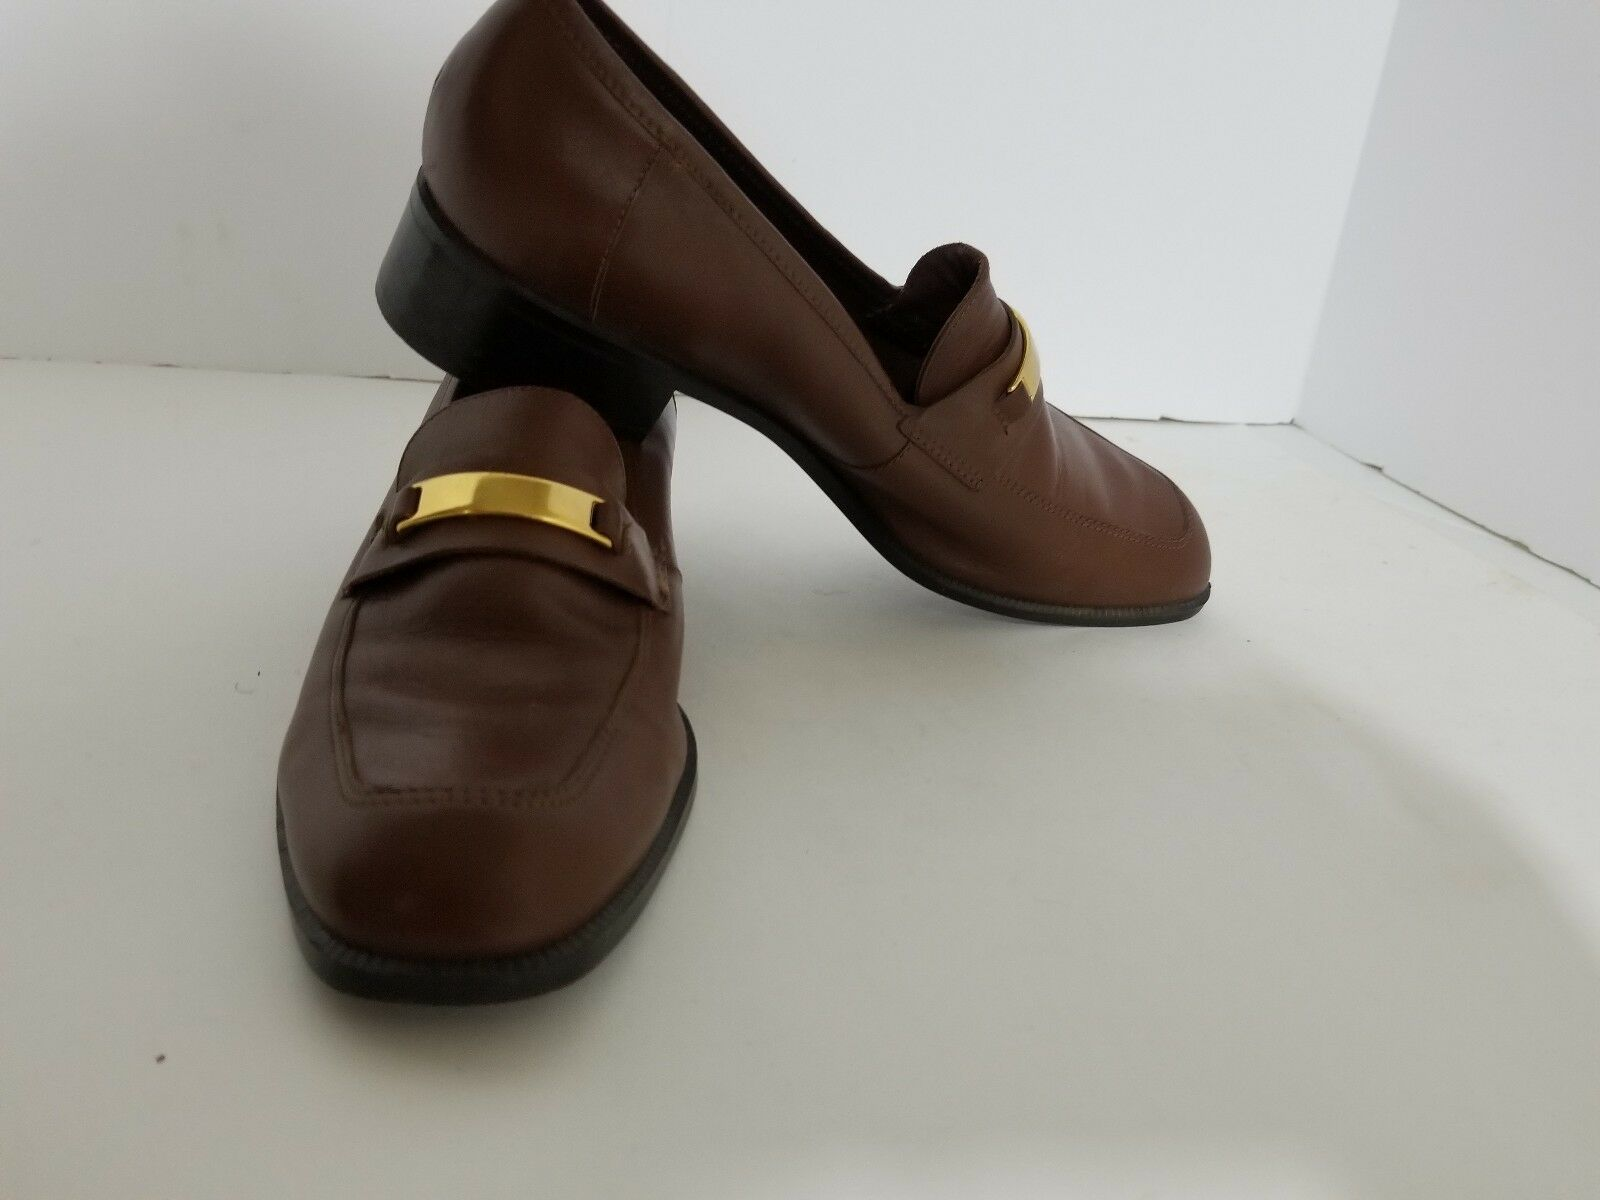 Unisa  Brown Leather Women's Pumps Shoes Size 7M